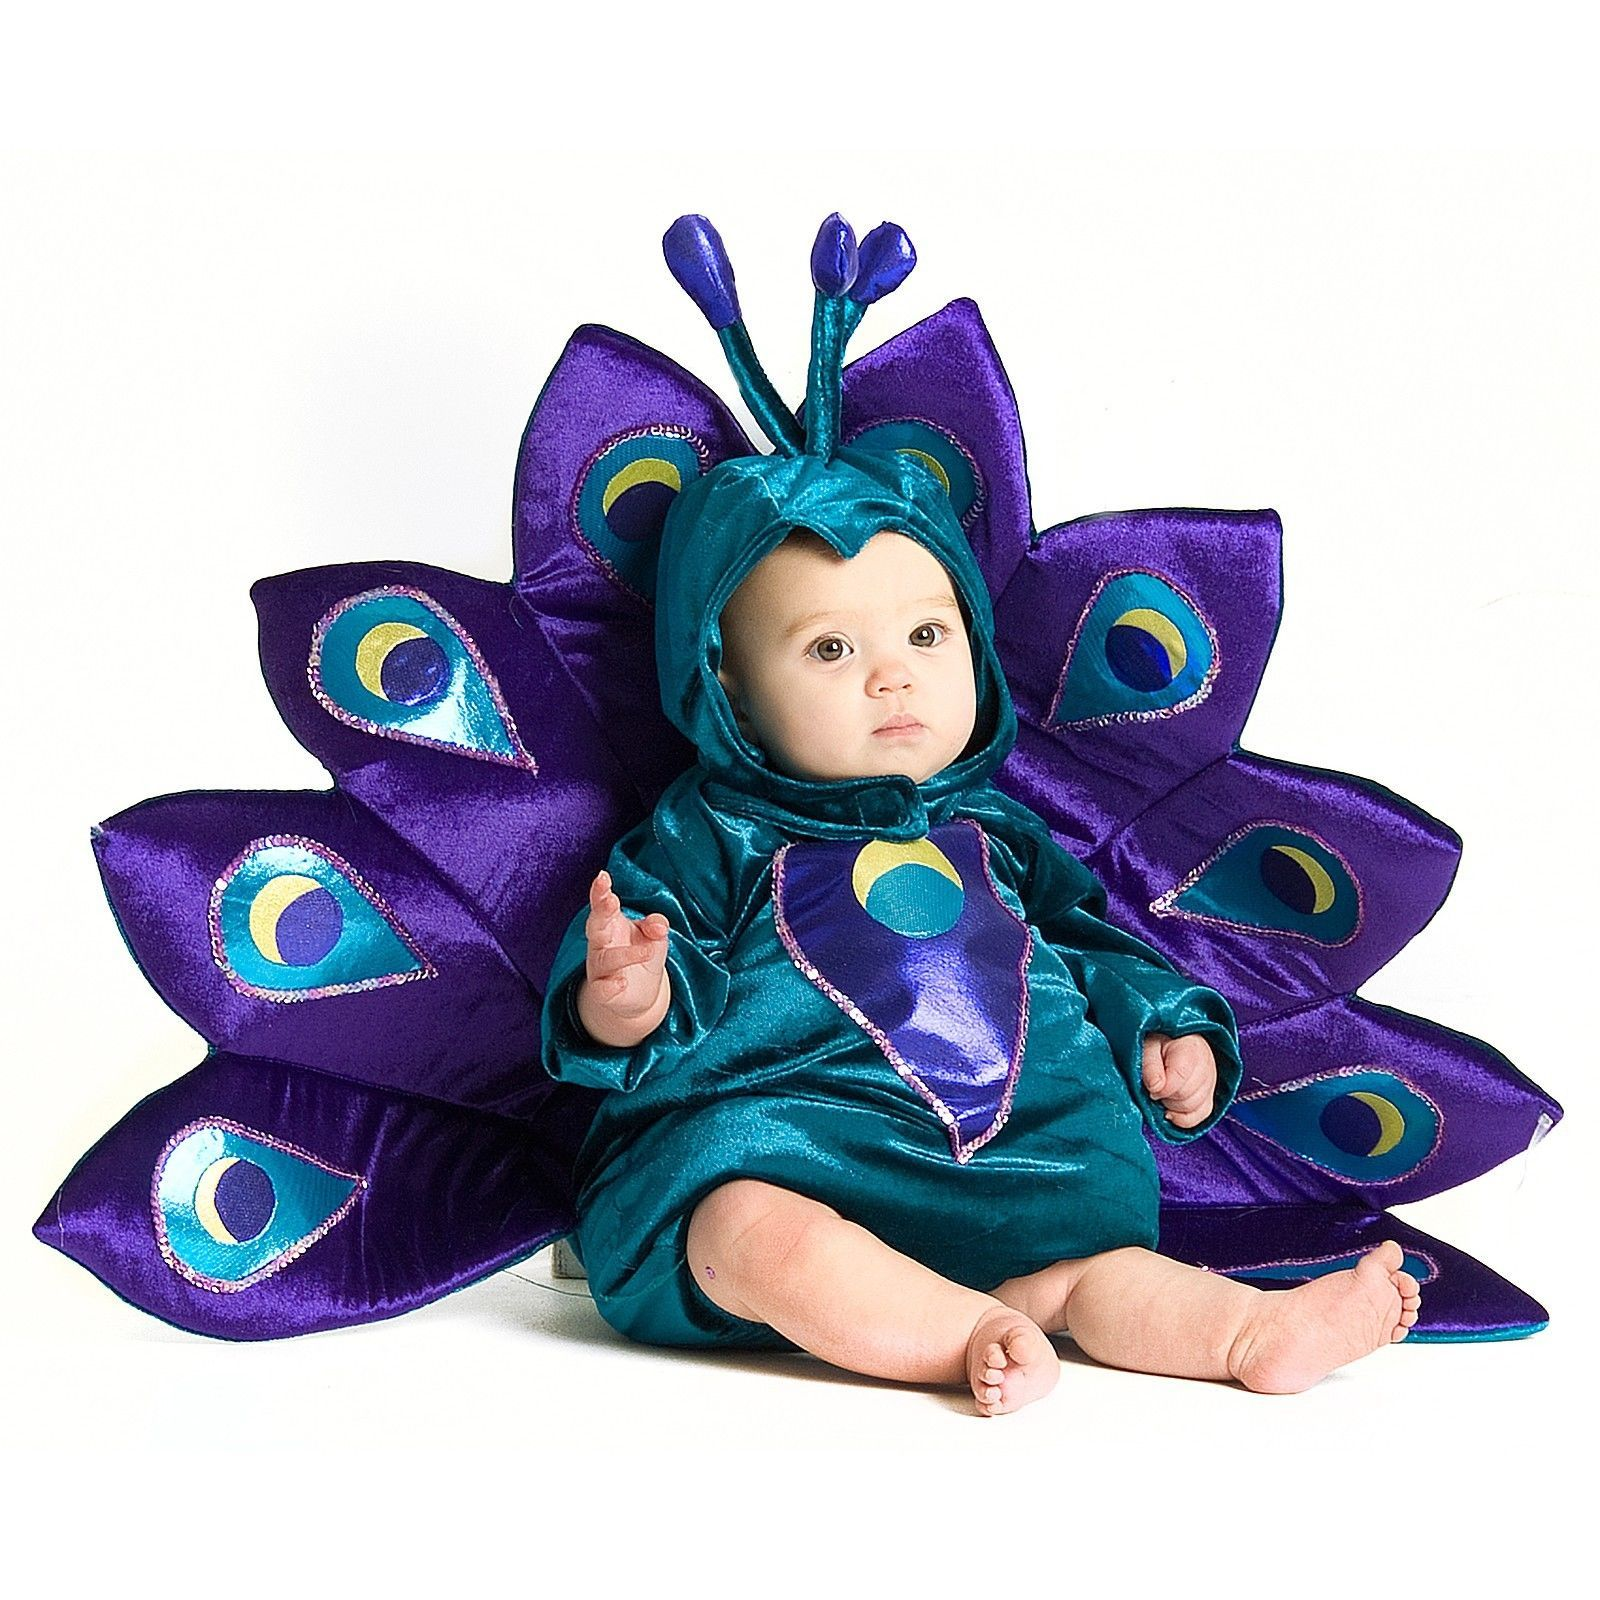 NEW NIP Baby Infant Boy or Girl 18 Months to 2T Peacock Halloween Costume